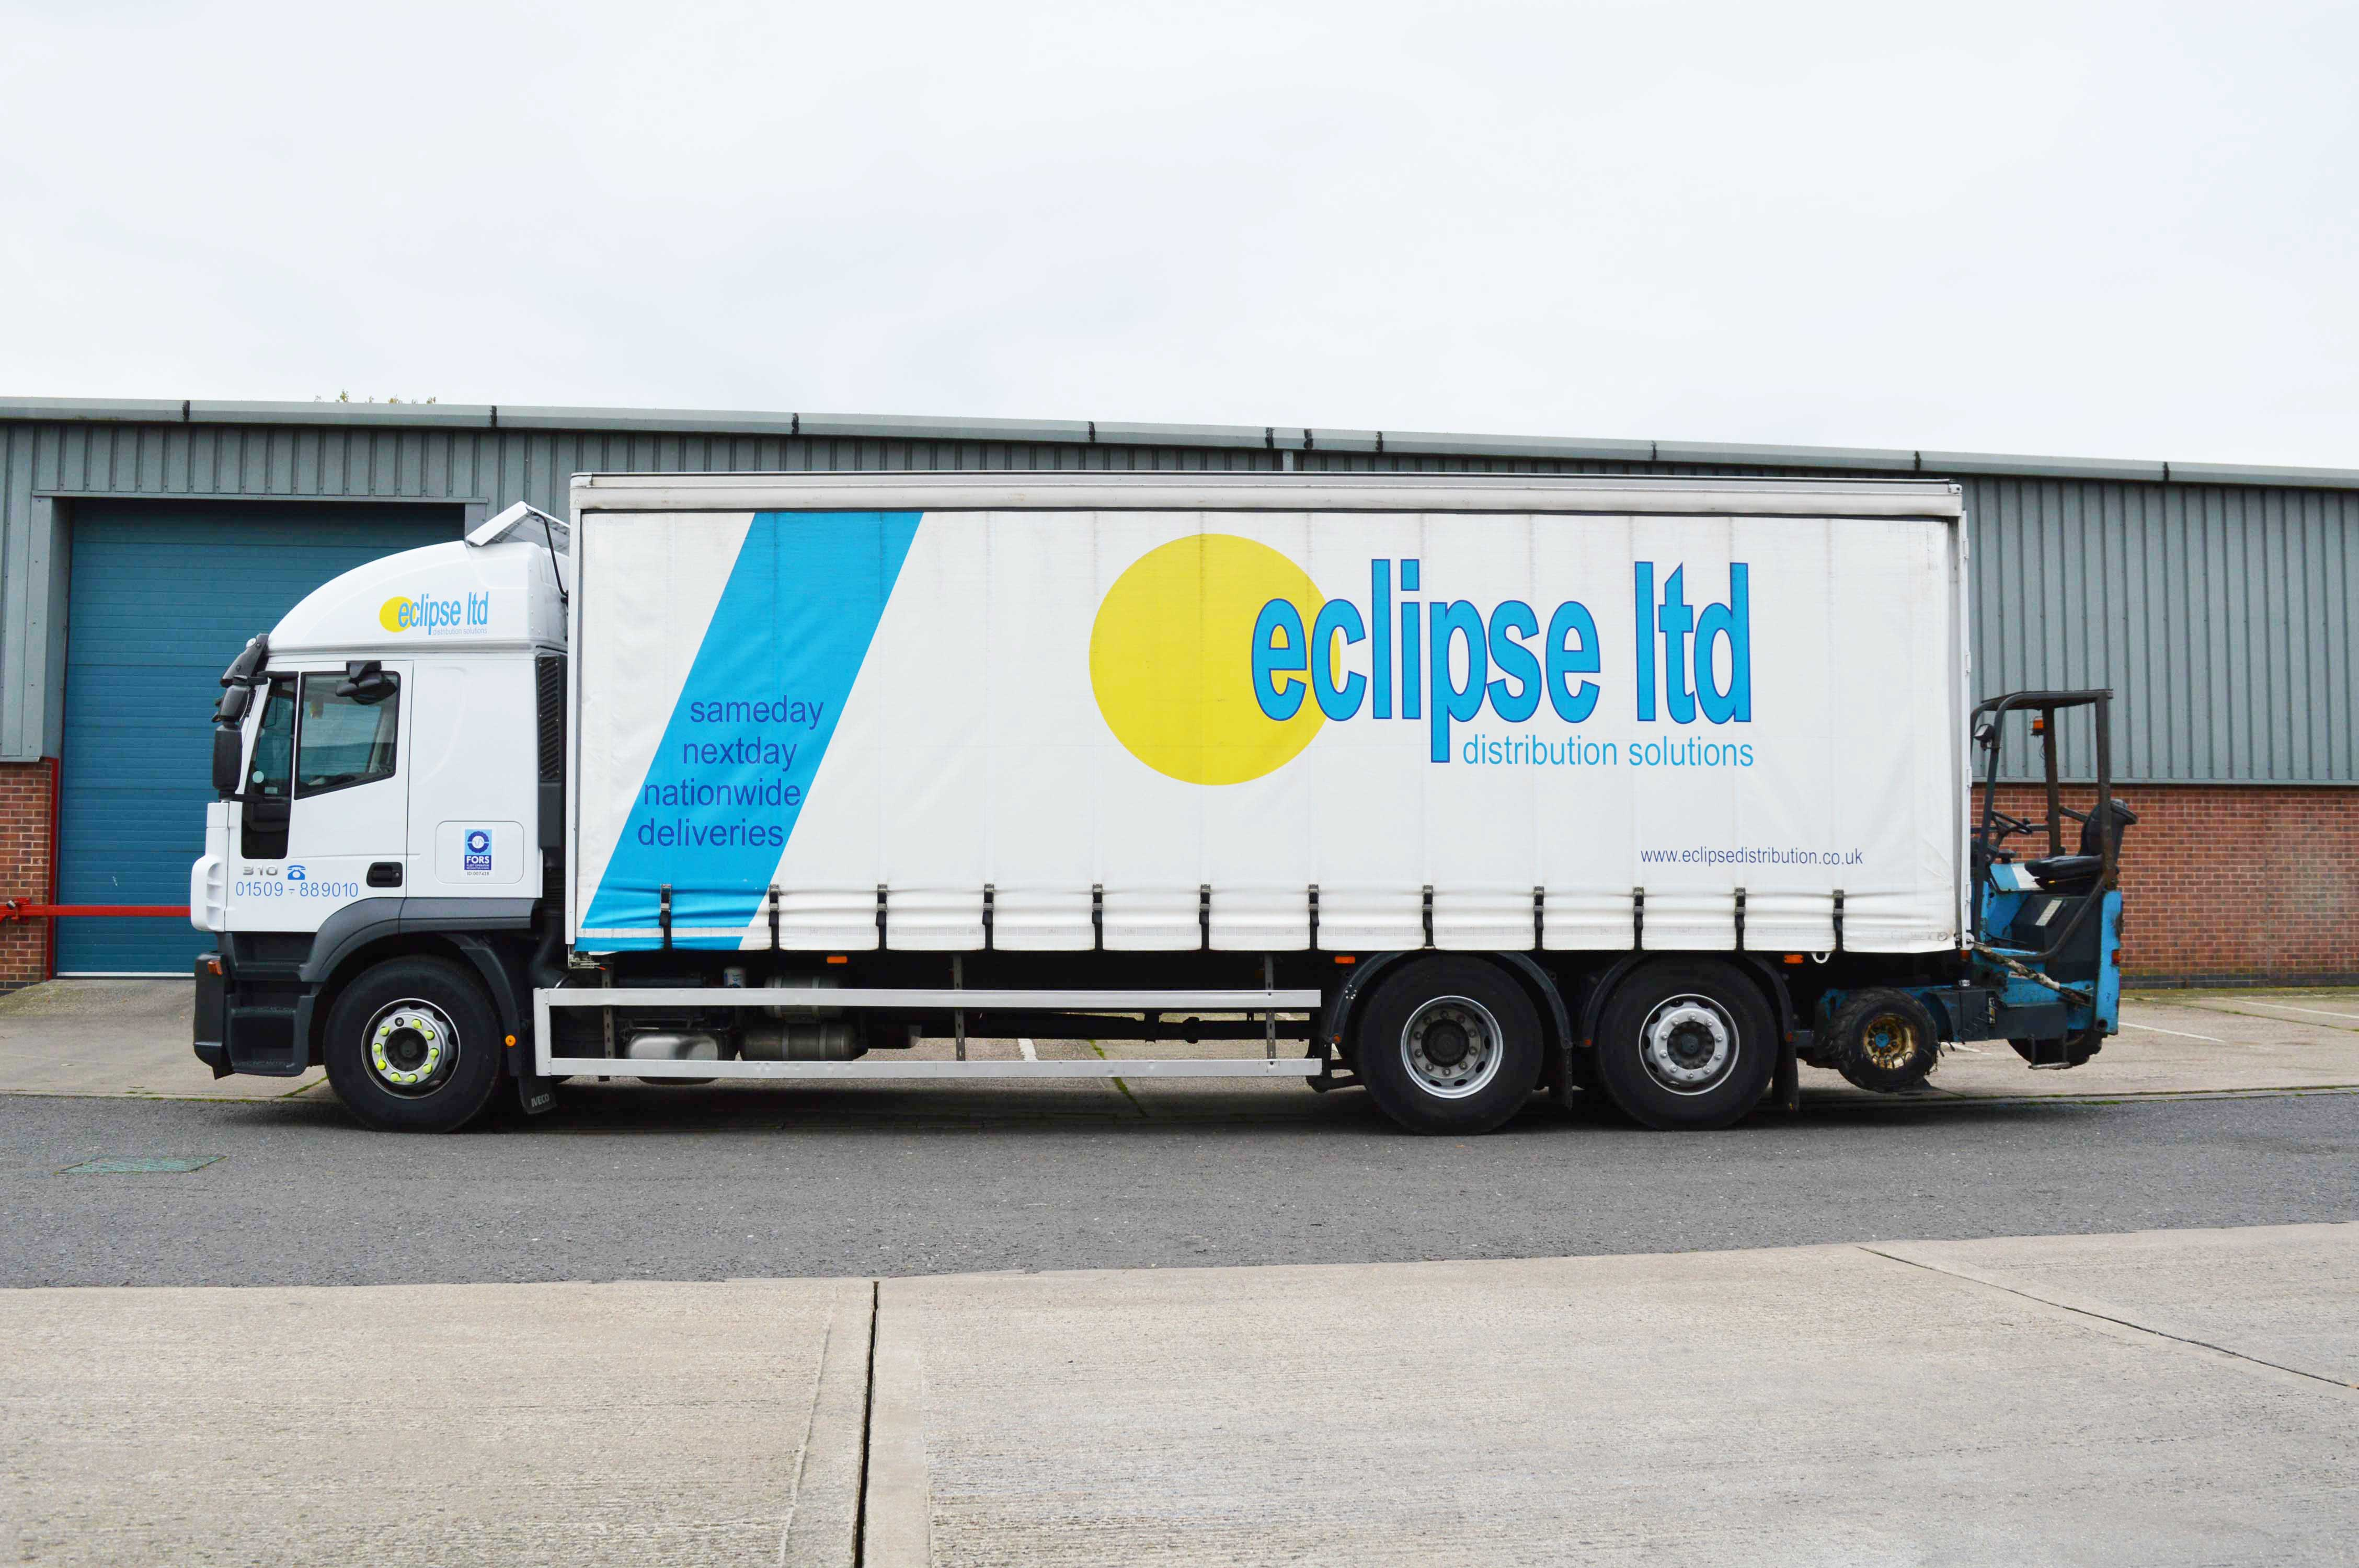 An image showing the side view of an Eclipse Distribution Solutions Ltd curtain sided lorry.